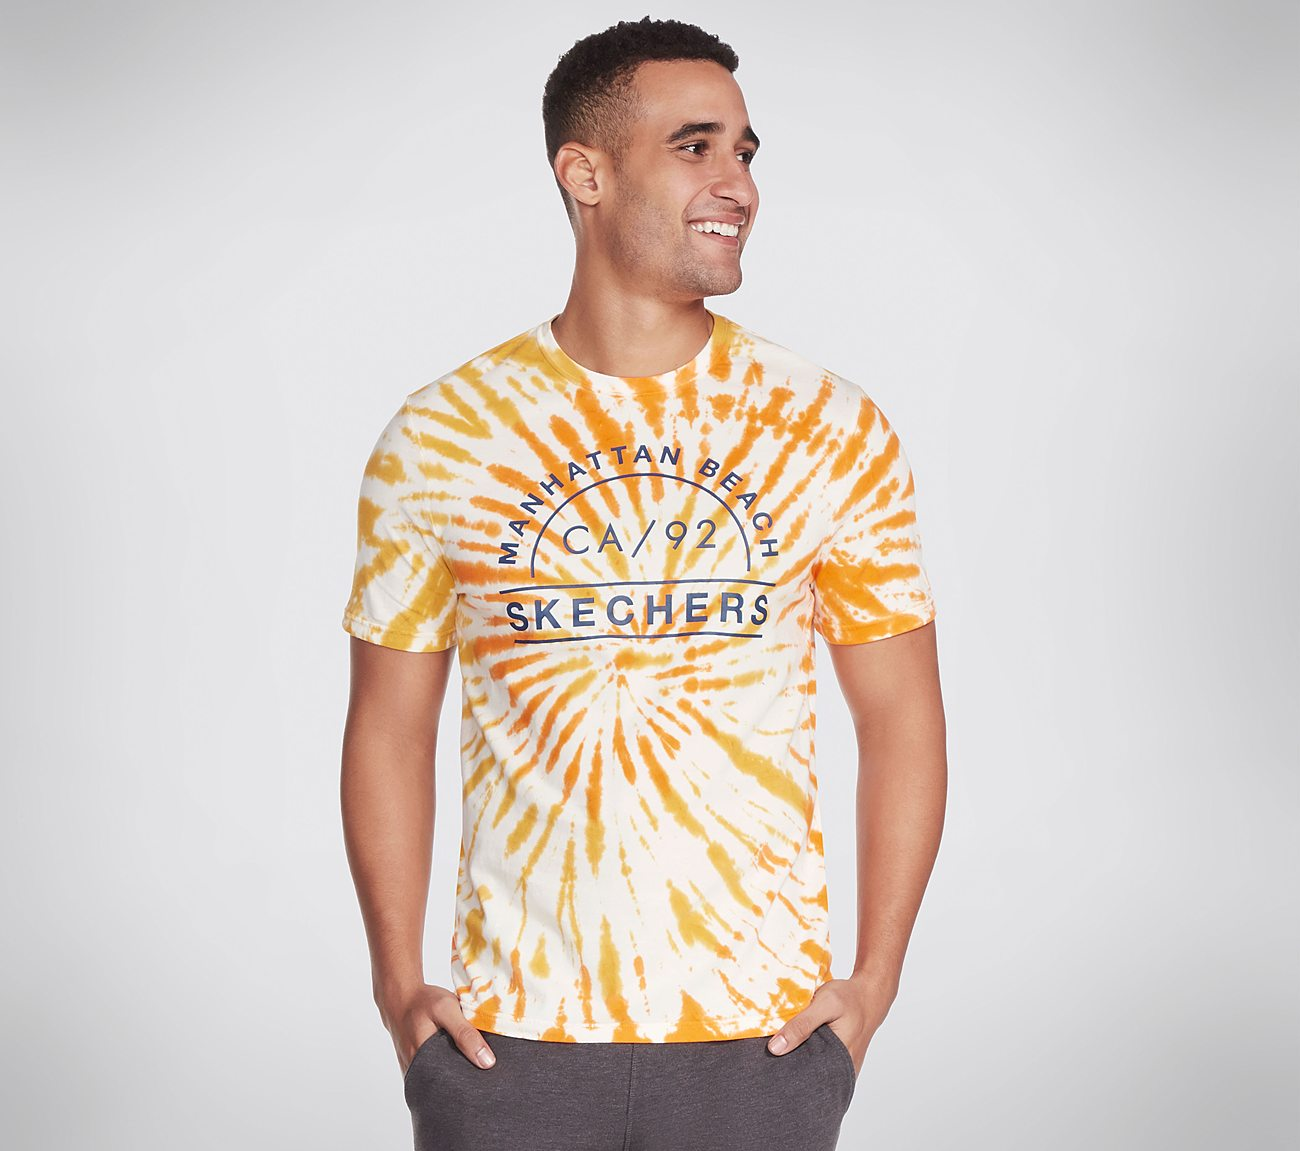 Skechers Apparel Tie Dye CA 92 Tee Shirt